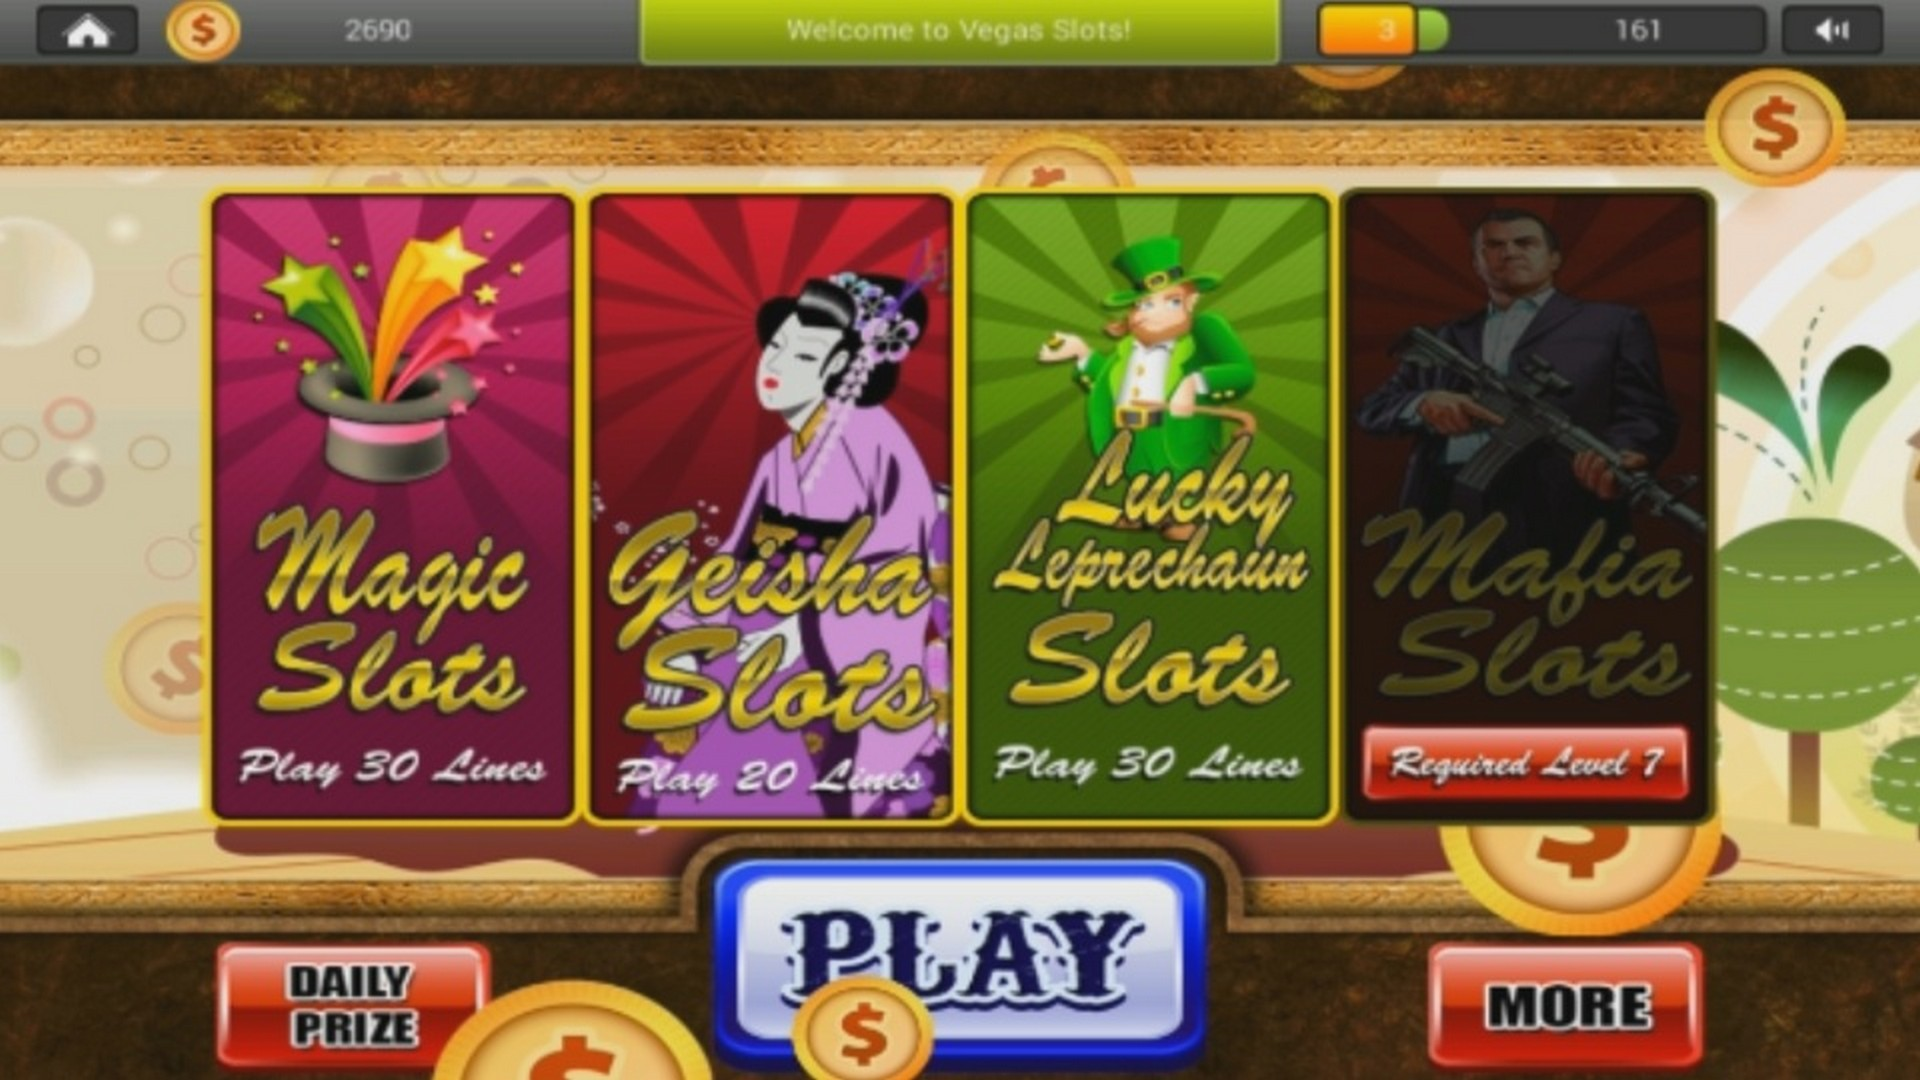 Geisha slots for android online casino portal mxq pro 4k android tv box review do it yourself tech solutioingenieria Images